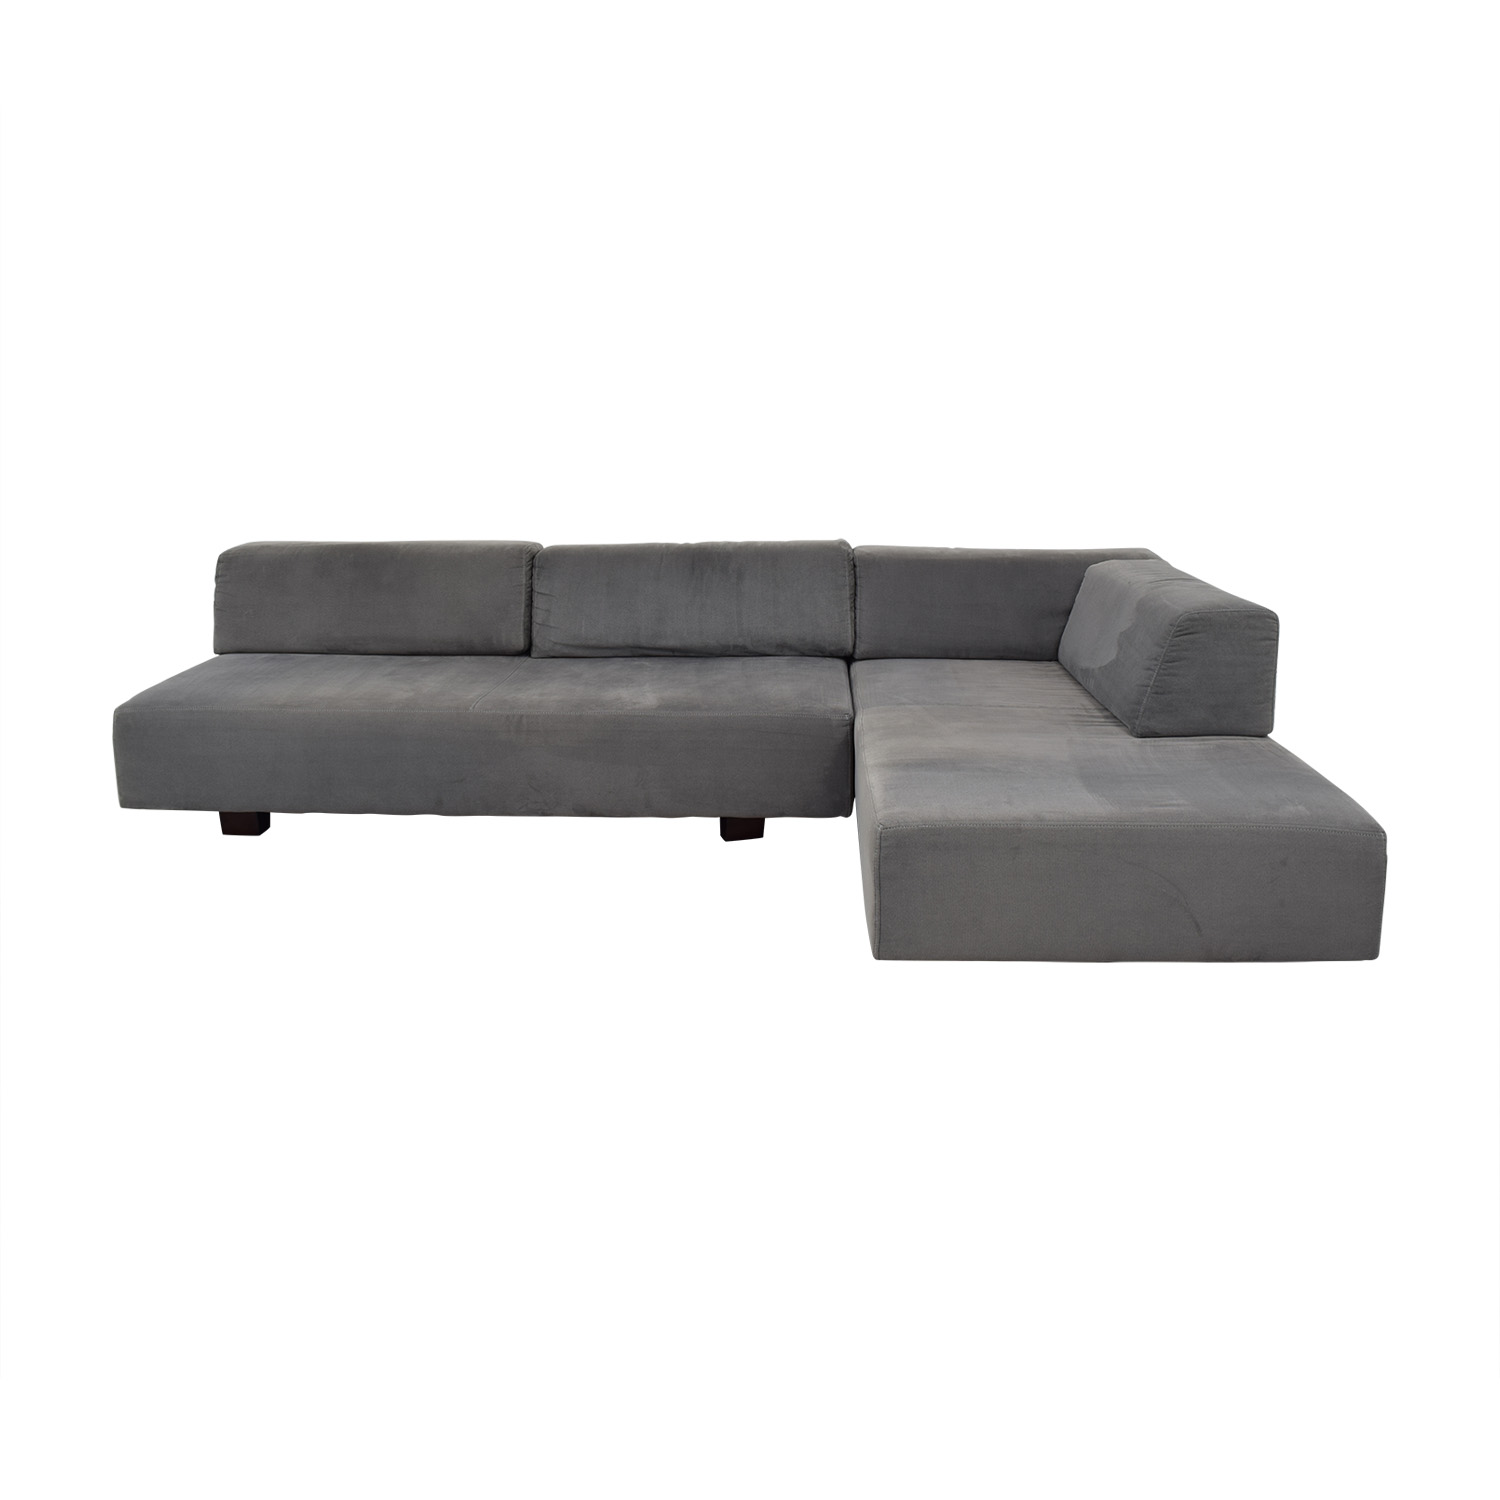 West Elm Tillary Modular Sectional Sofa / Sectionals